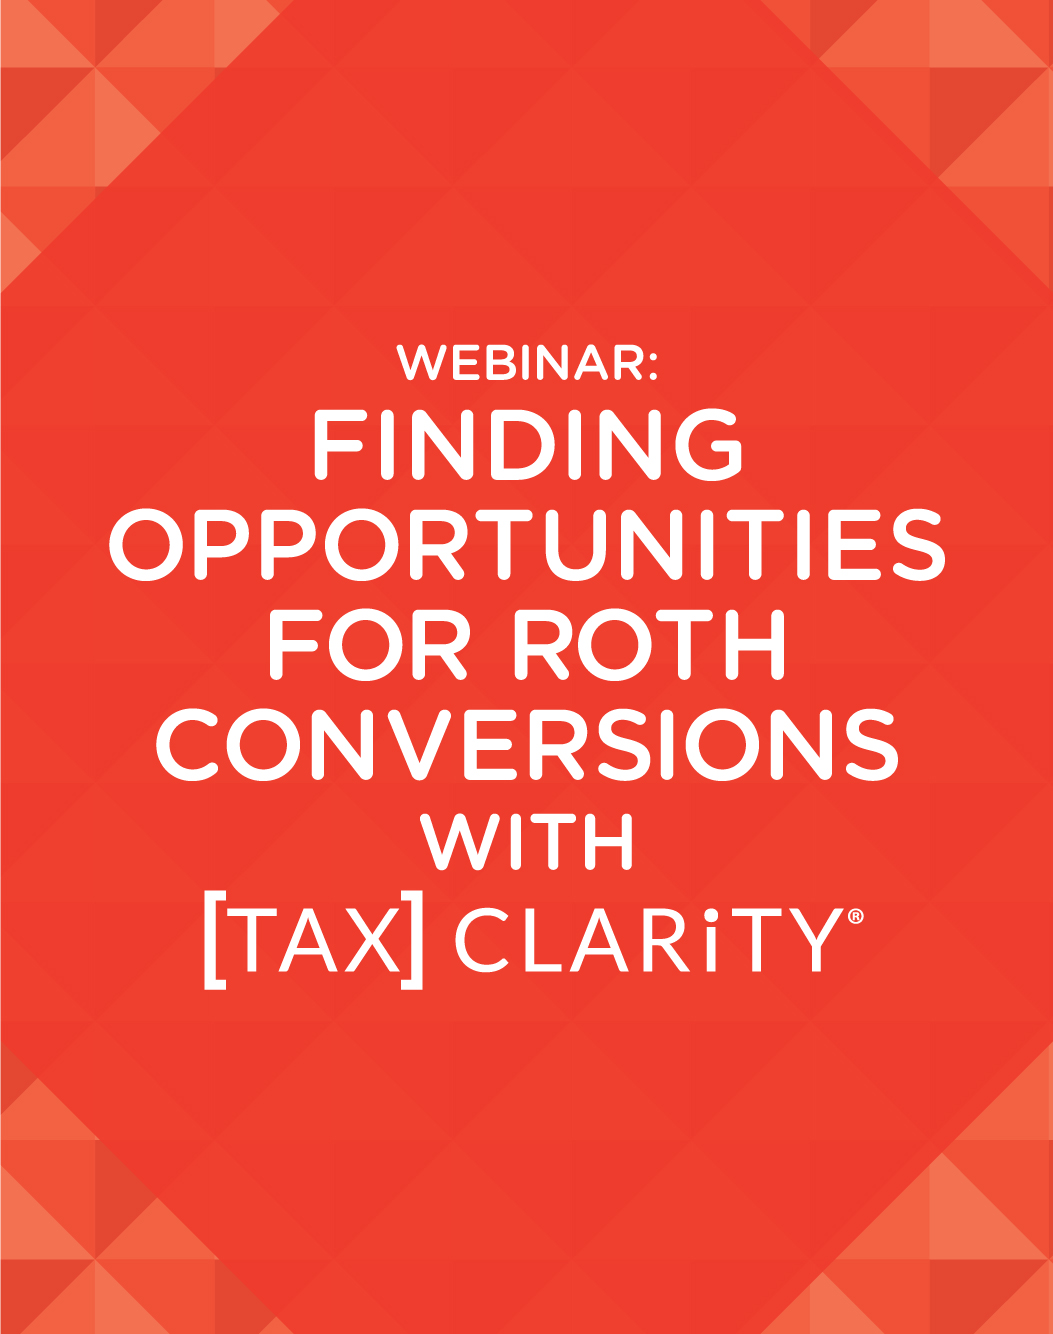 Finding Opportunities for Roth Conversions with Tax Clarity